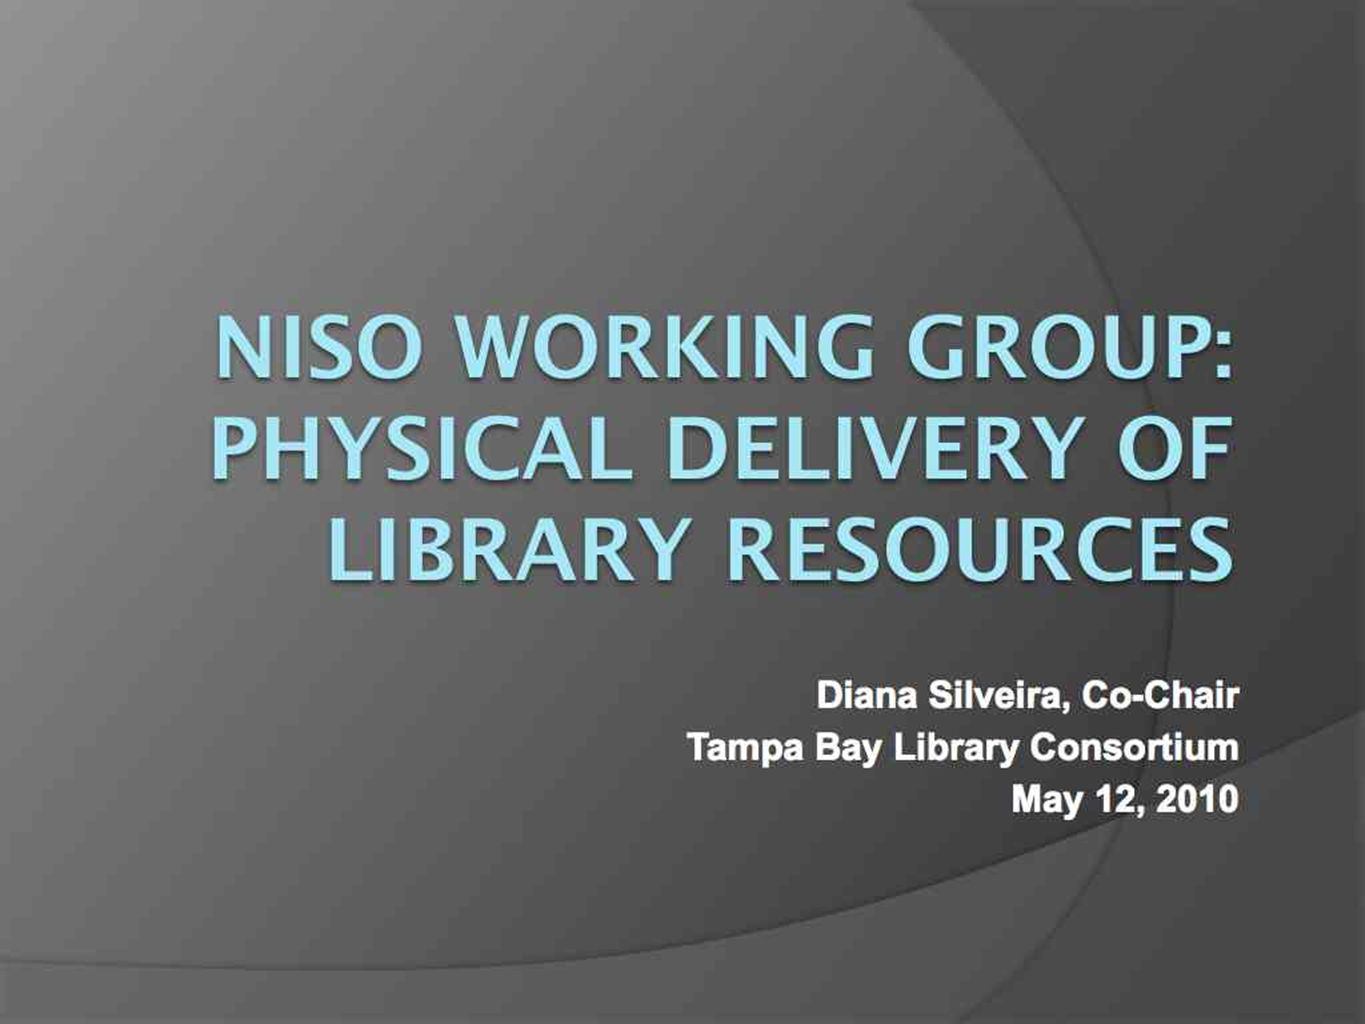 30 NISO Working Group: Physical Delivery of Library Resources Diana Silveira, Co-Chair Tampa Bay Library Consortium May 12, 2010